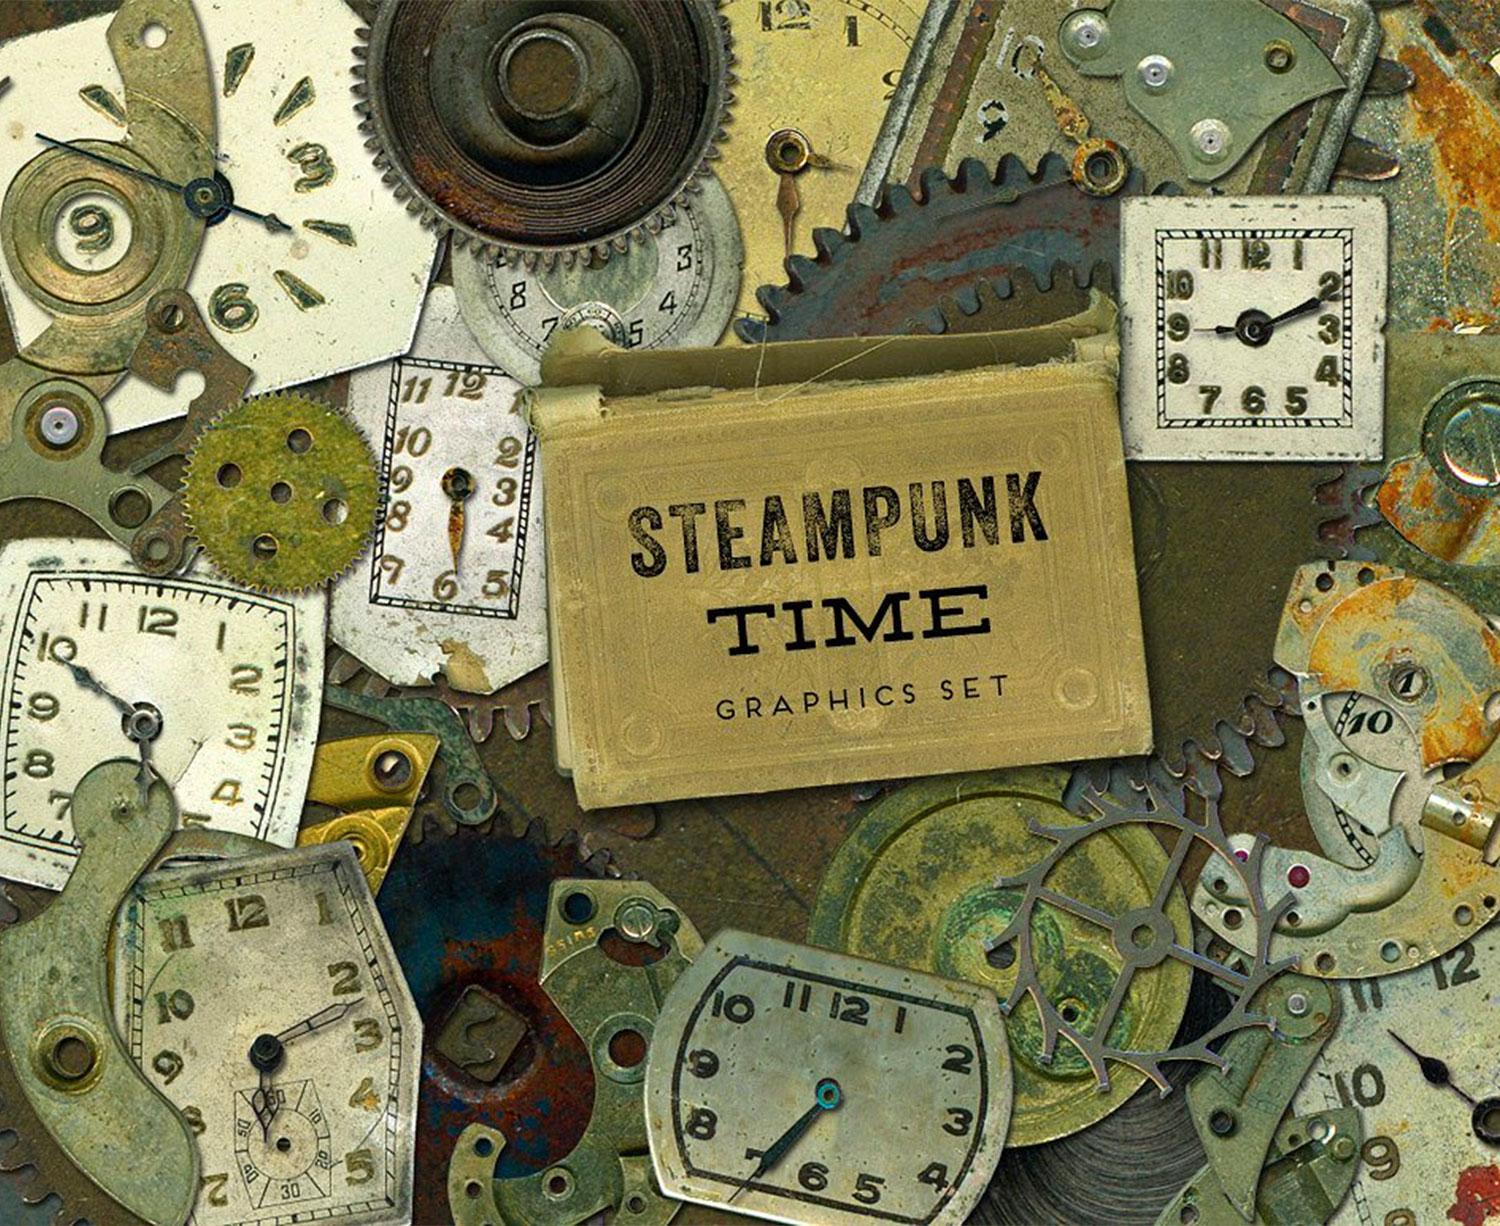 Steampunk-top-image